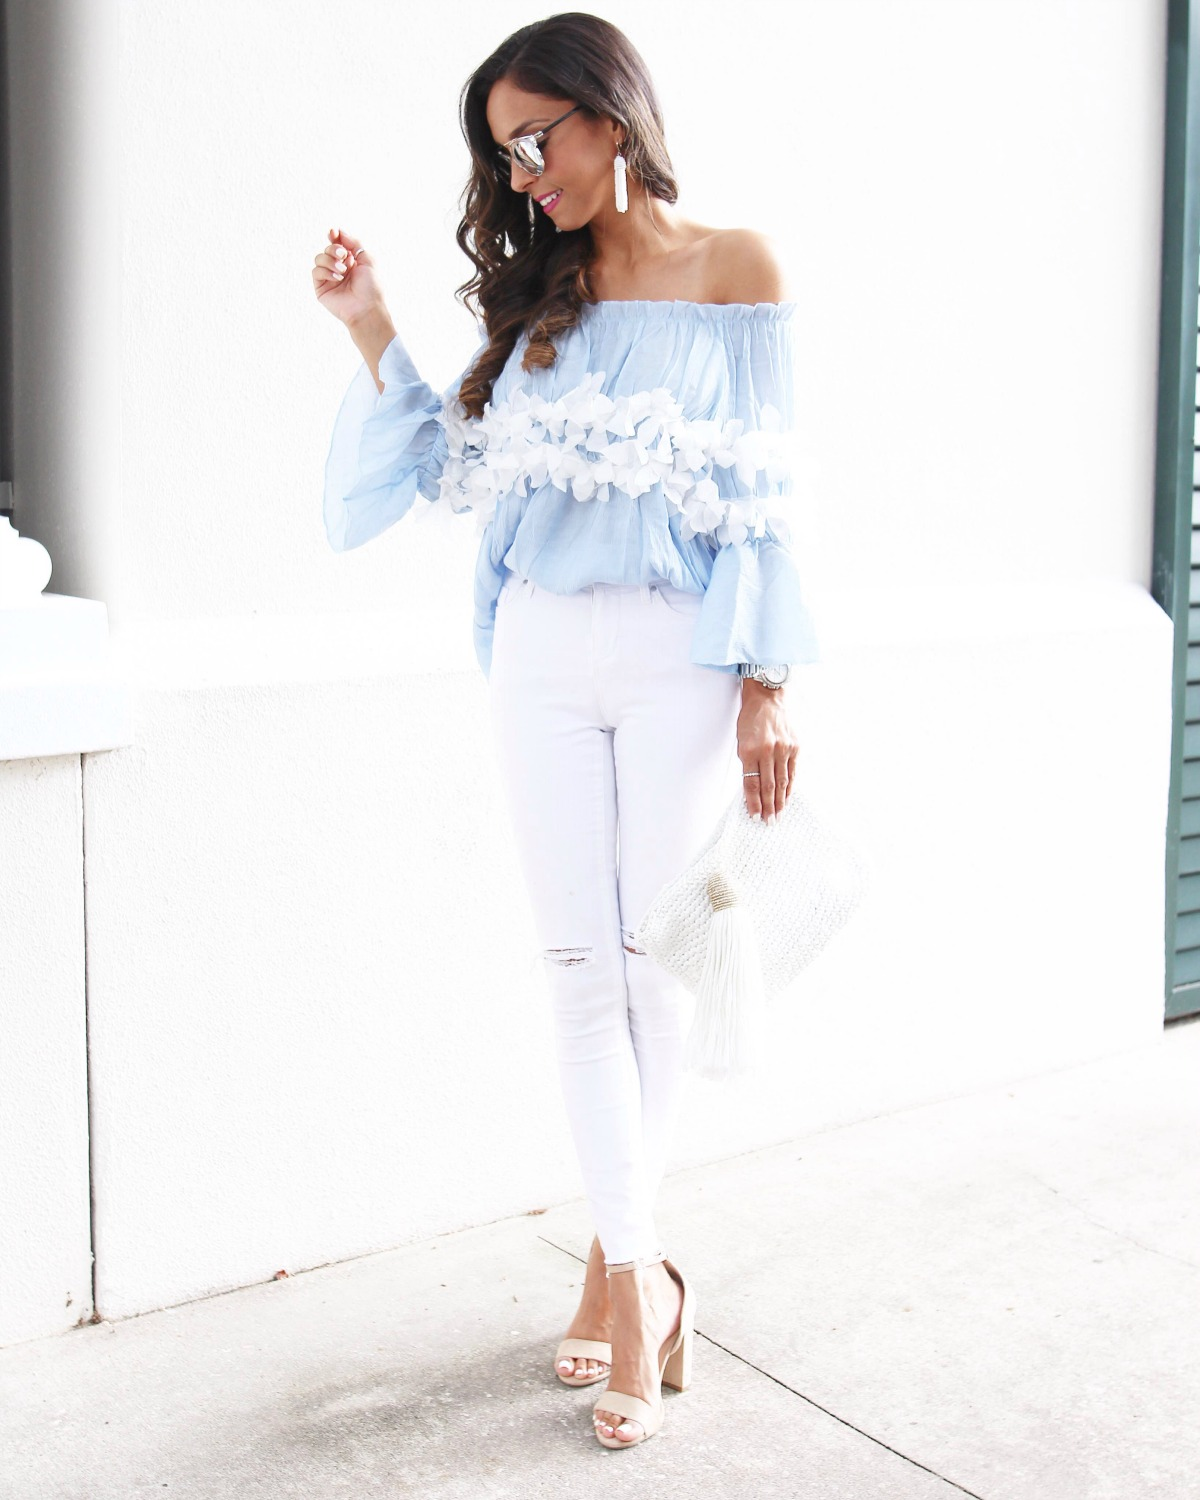 c29df7c0c1ab92 Light blue off the shoulder top with trimmed flower detail and white jeans